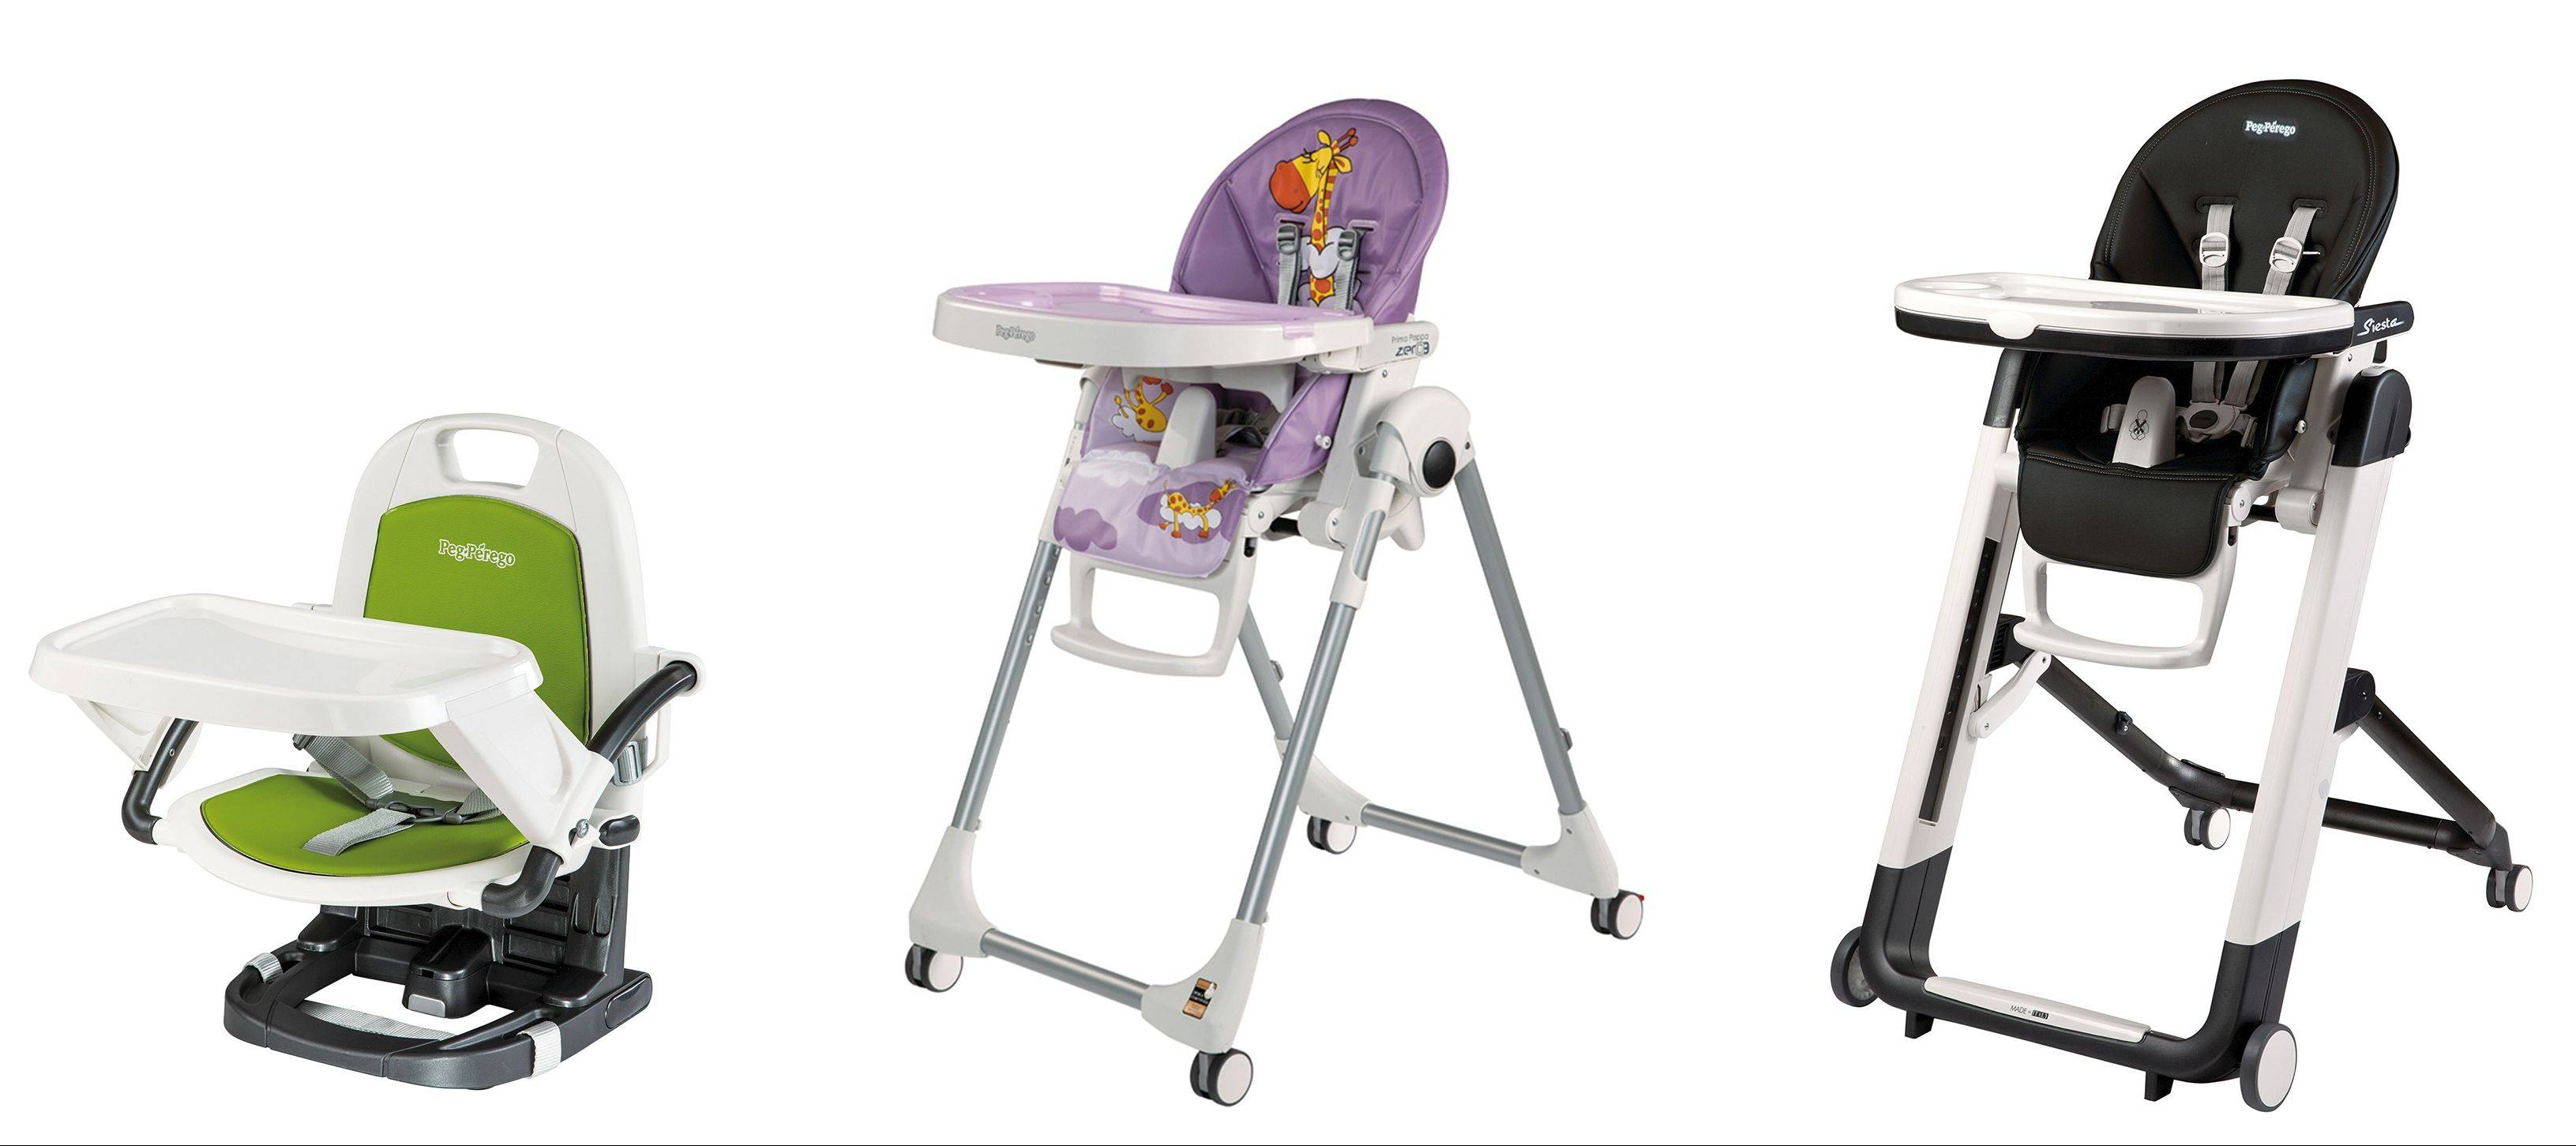 Feeding a baby is a messy business, but high chairs have come a long way, with designs that go beyond ponies and giraffes to fit seamlessly into your home.